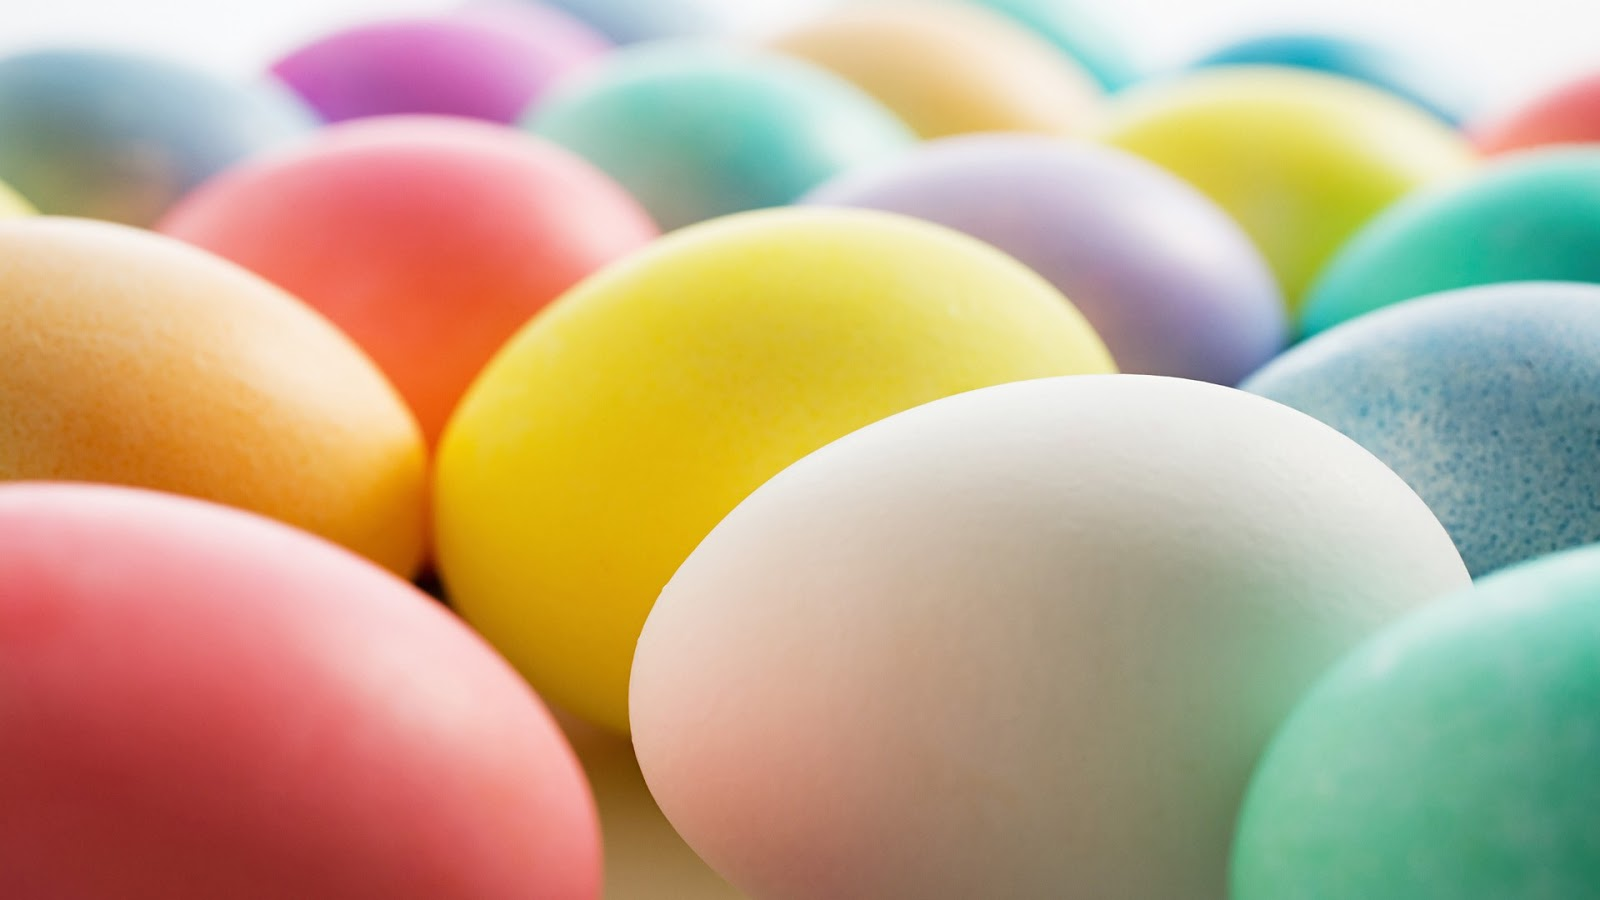 Happy Easter Pictures Images Wallpapers 2021 (2)